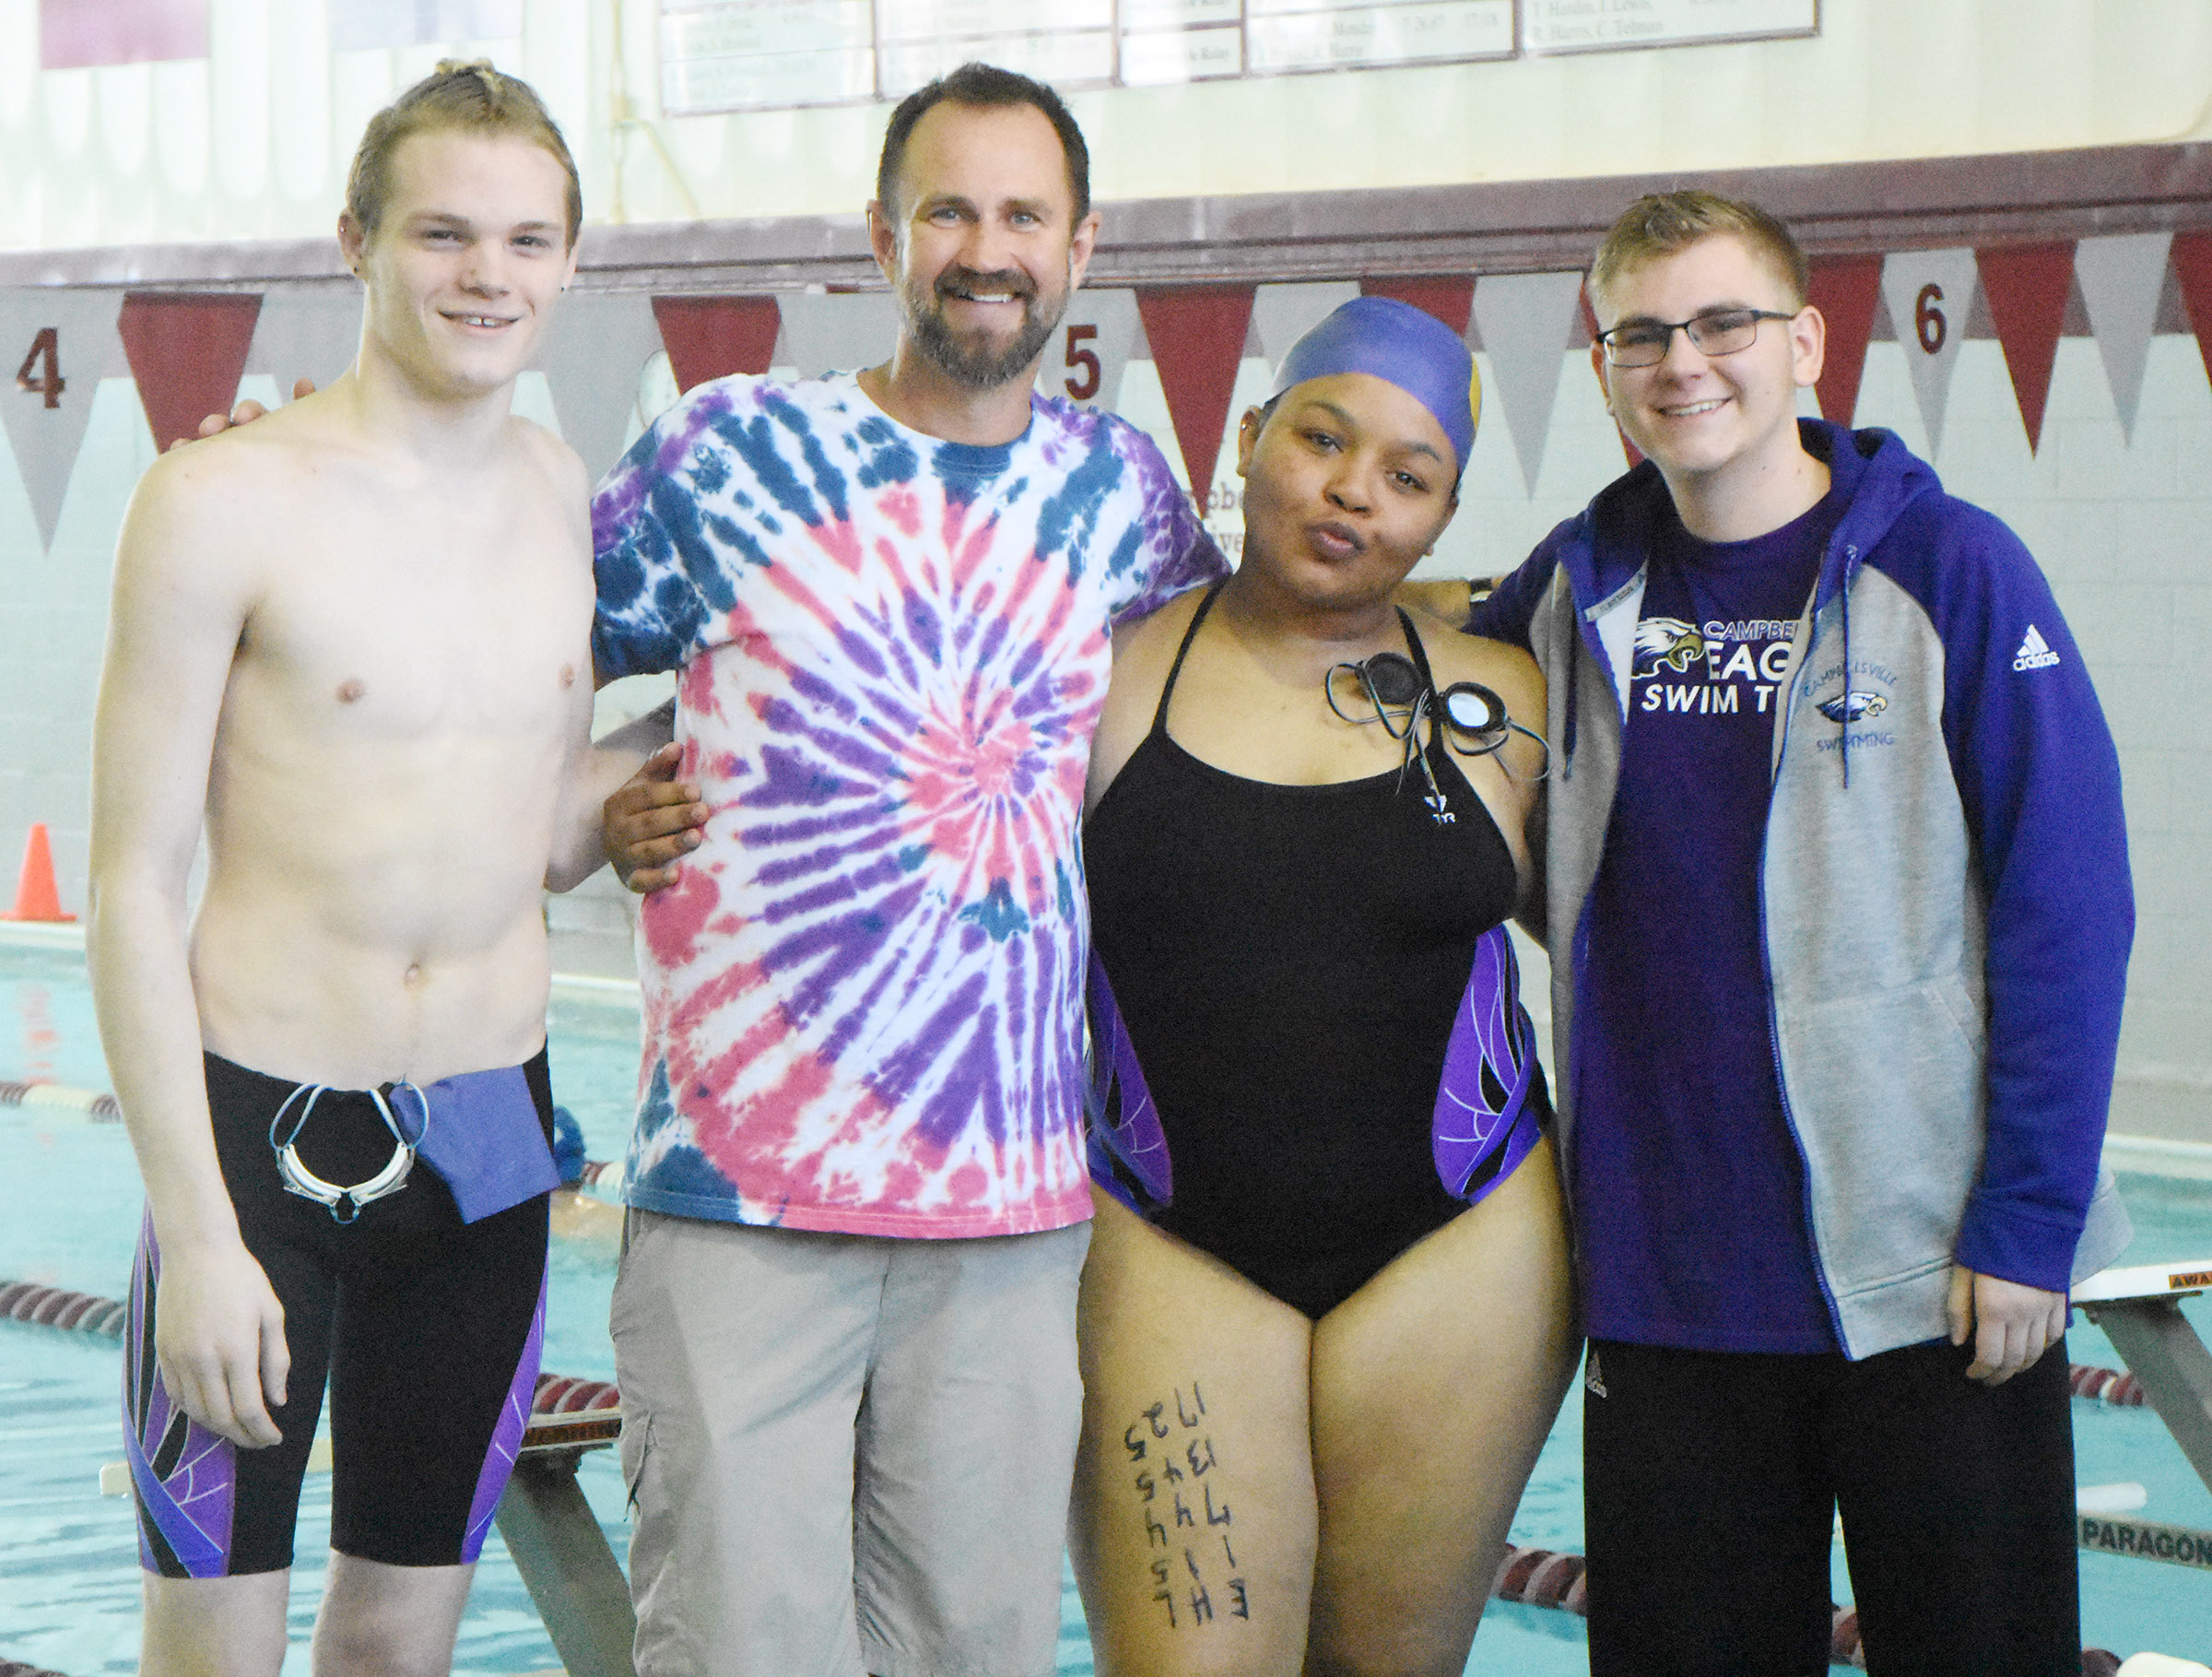 CHS senior swim team members were recently honored for their dedication to their team. From left are Joe Pipes, coach Steve Doss, Natalie Caldwell and Brandon Greer.